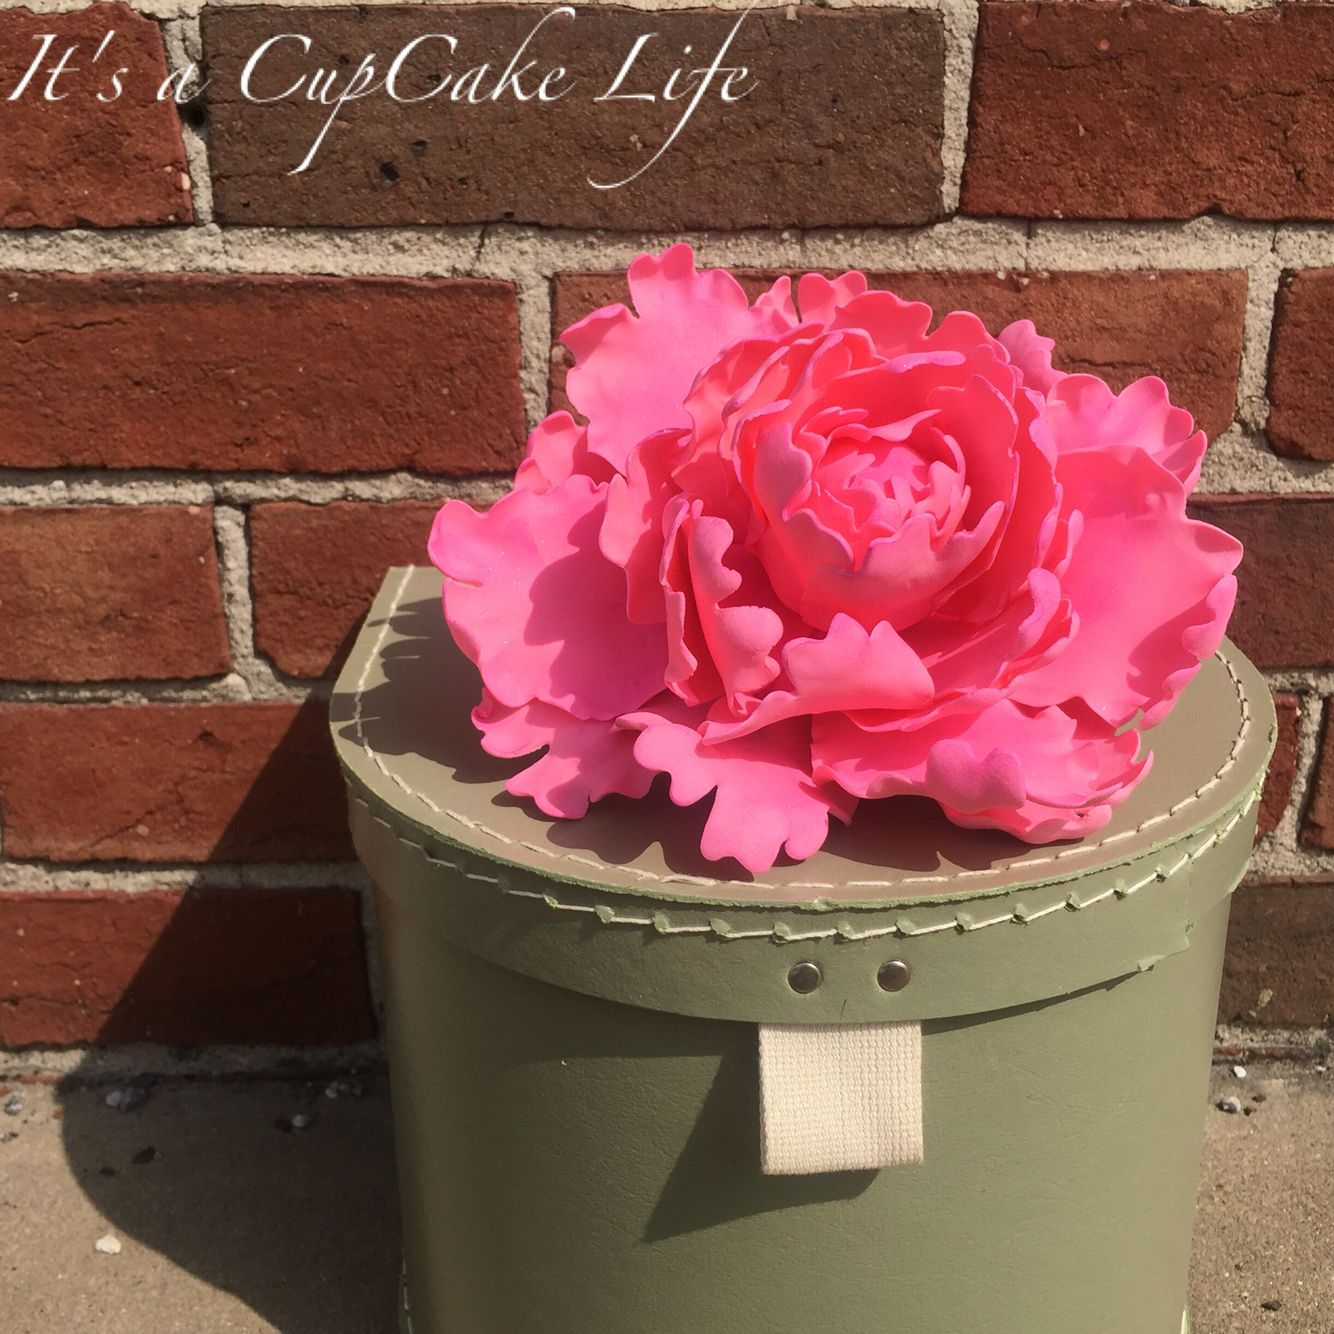 Oooh Sooo Pretty... Just love making sugar peonies! How about that pink?